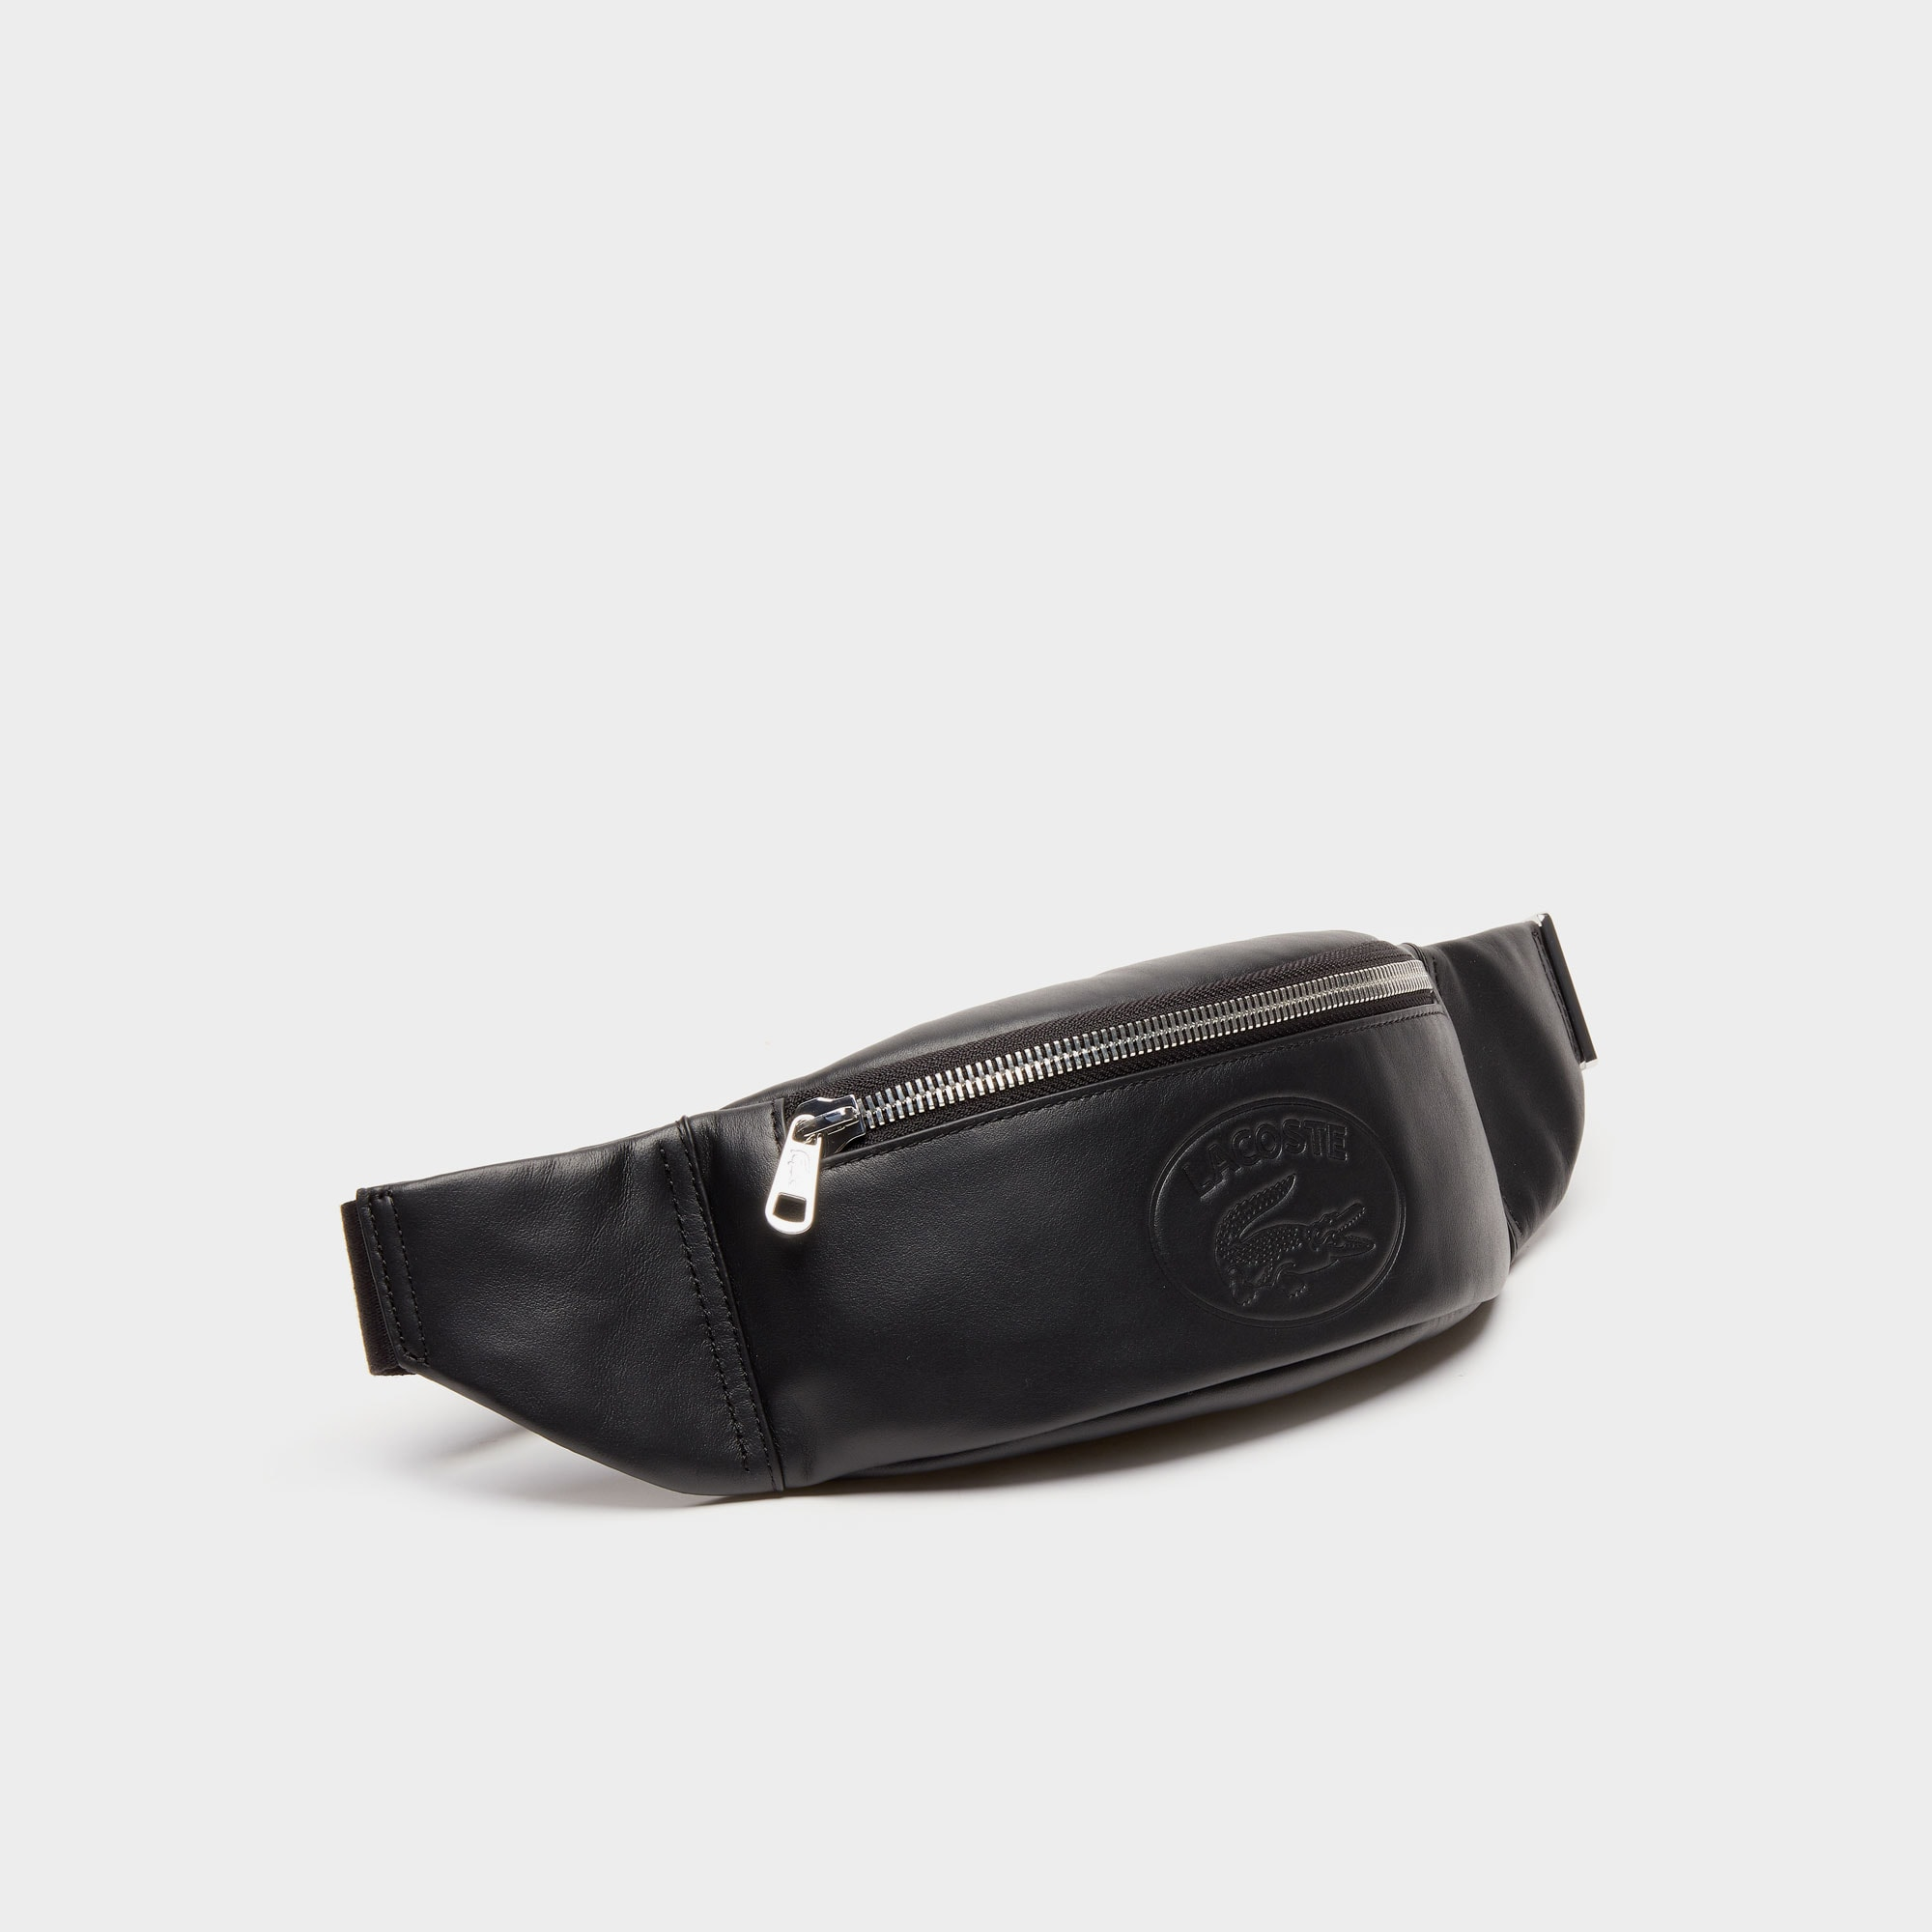 Besace Homme Lacoste Nh2657ic